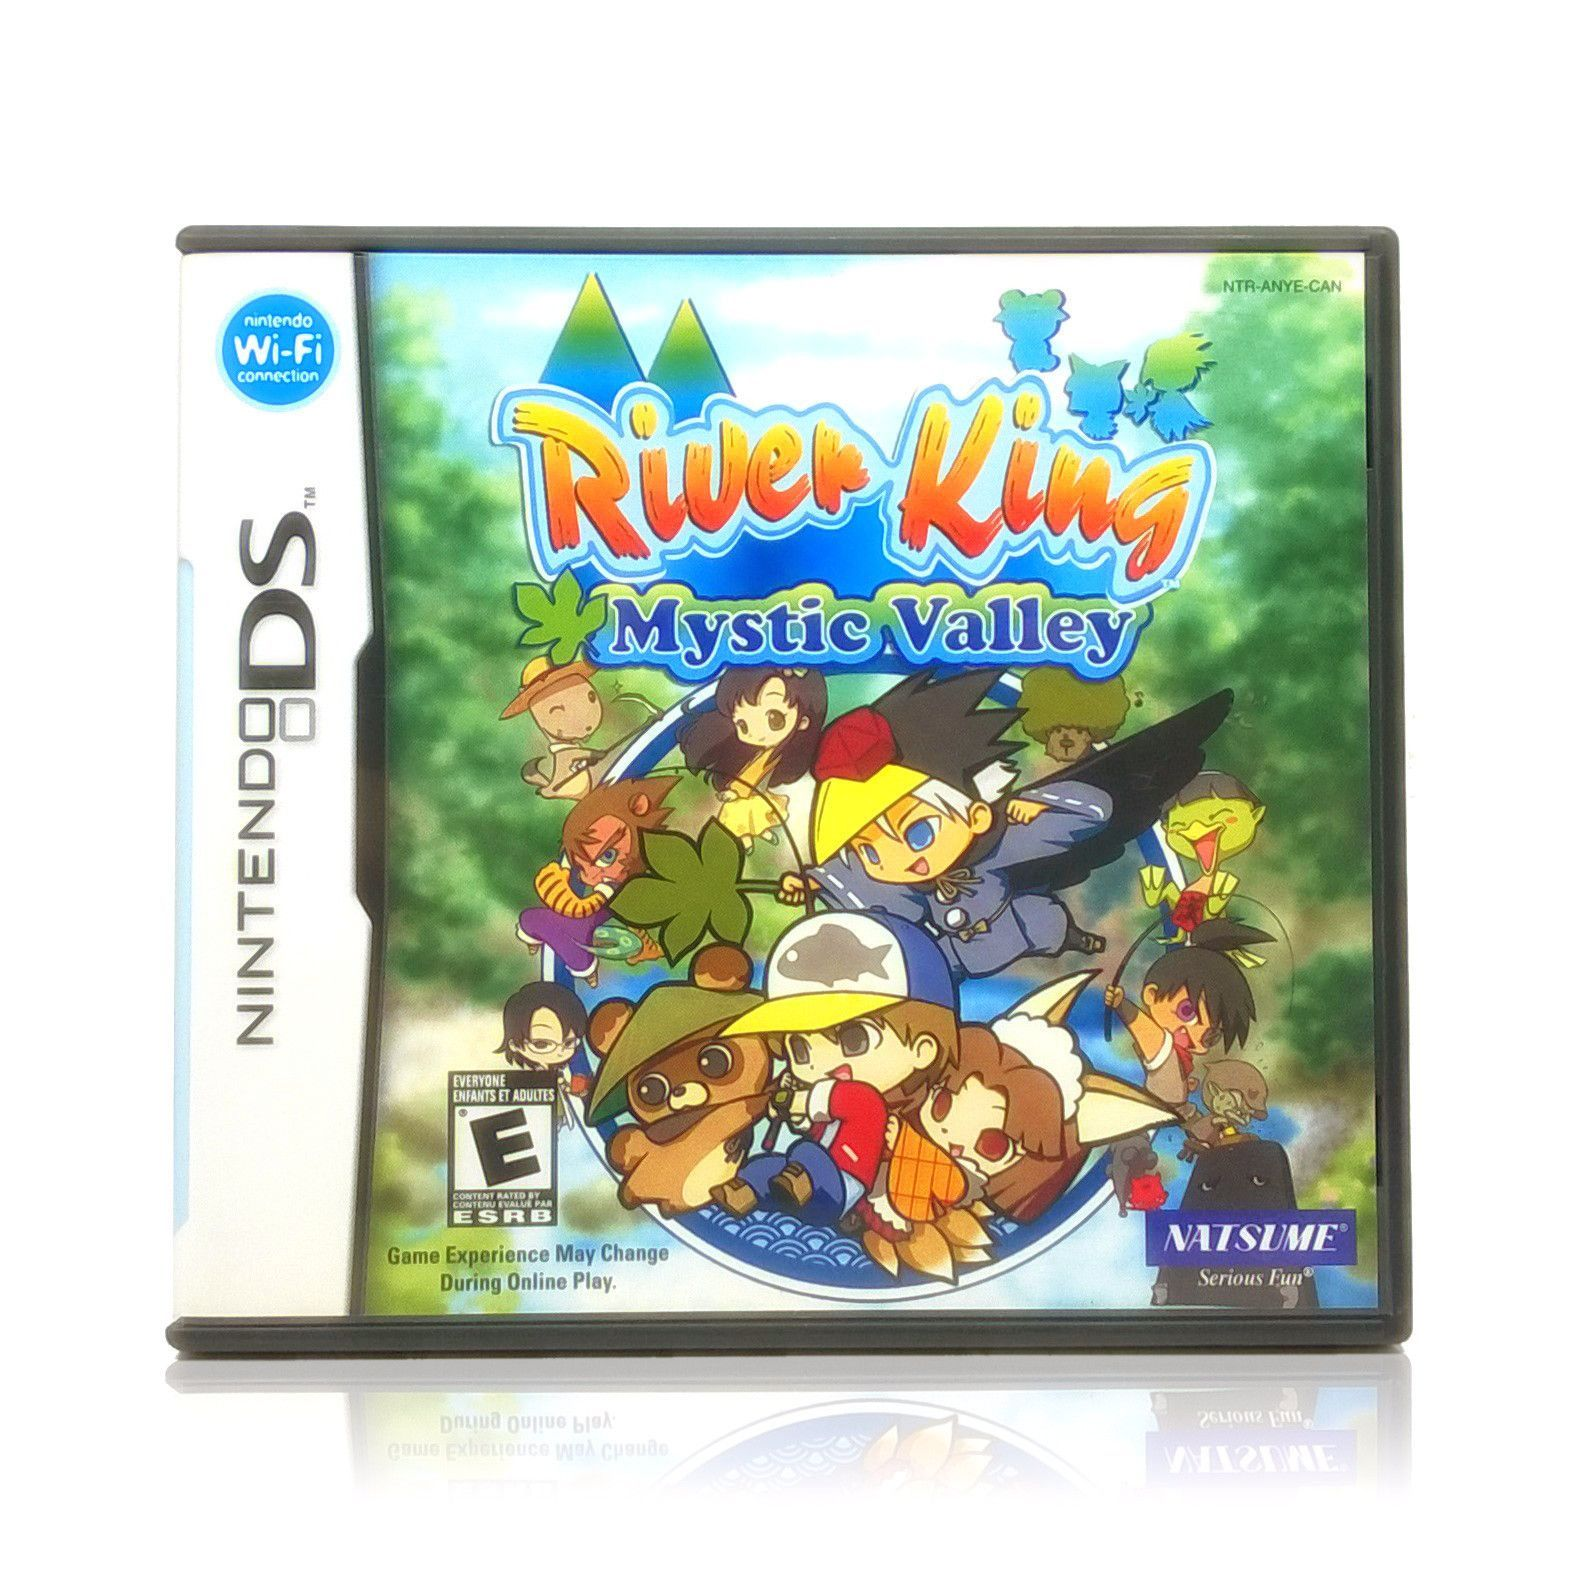 river king mystic valley mystic valley ds games and mystic